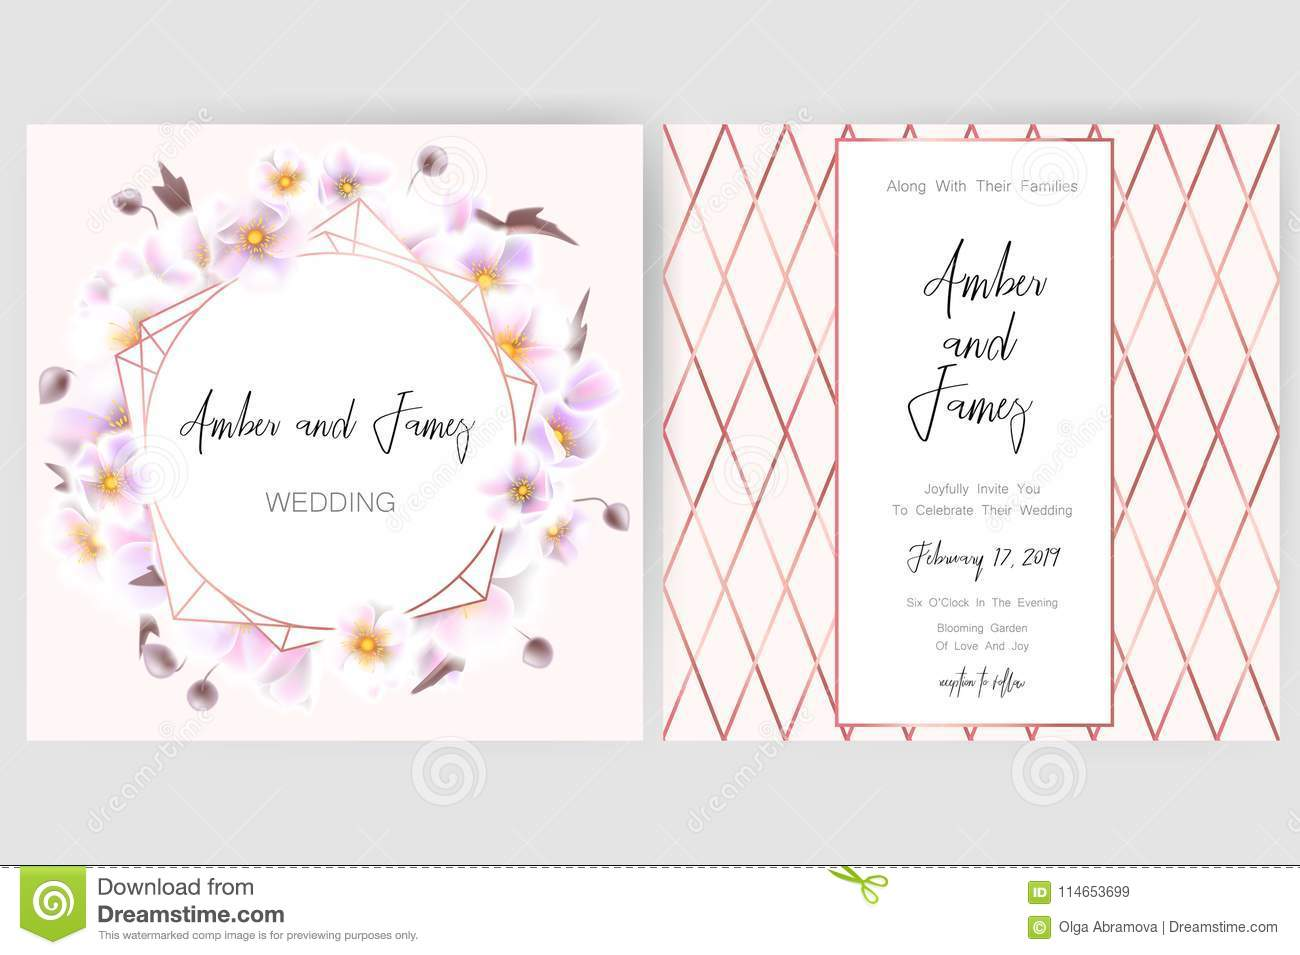 Save The Date Card Wedding Invitation Greeting Card With